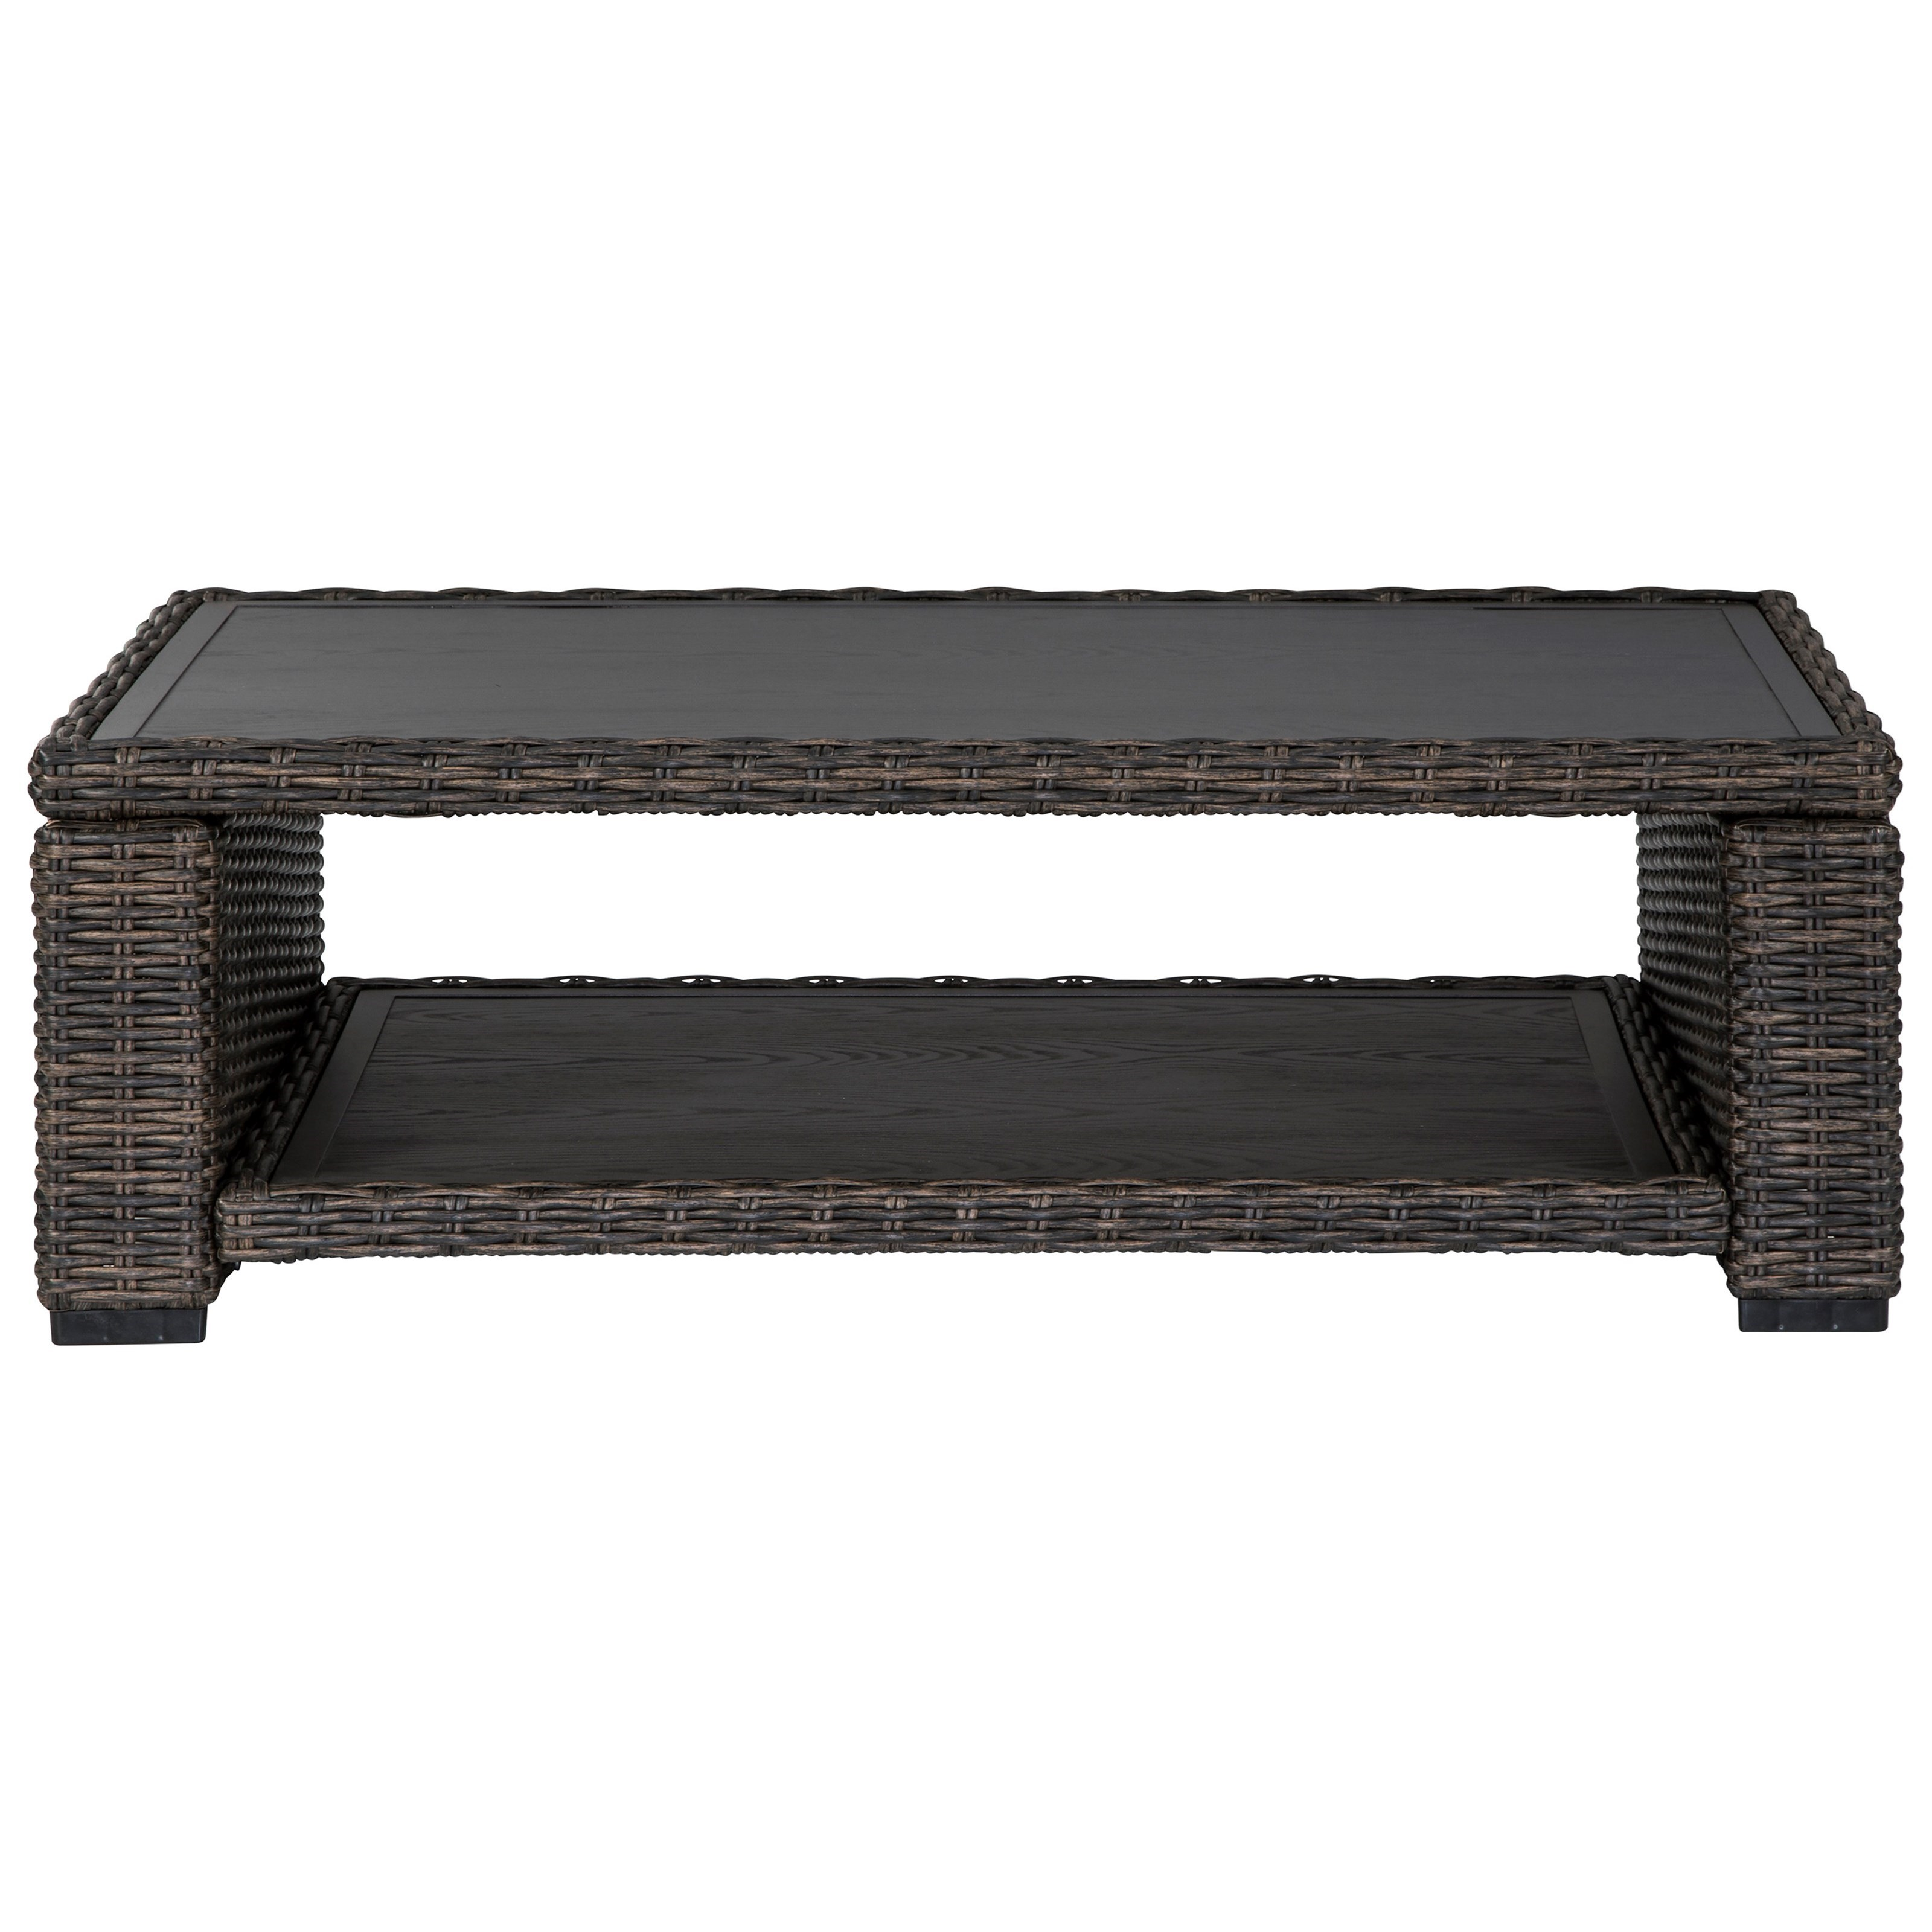 Grasson Lane Rectangular Cocktail Table by Signature at Walker's Furniture